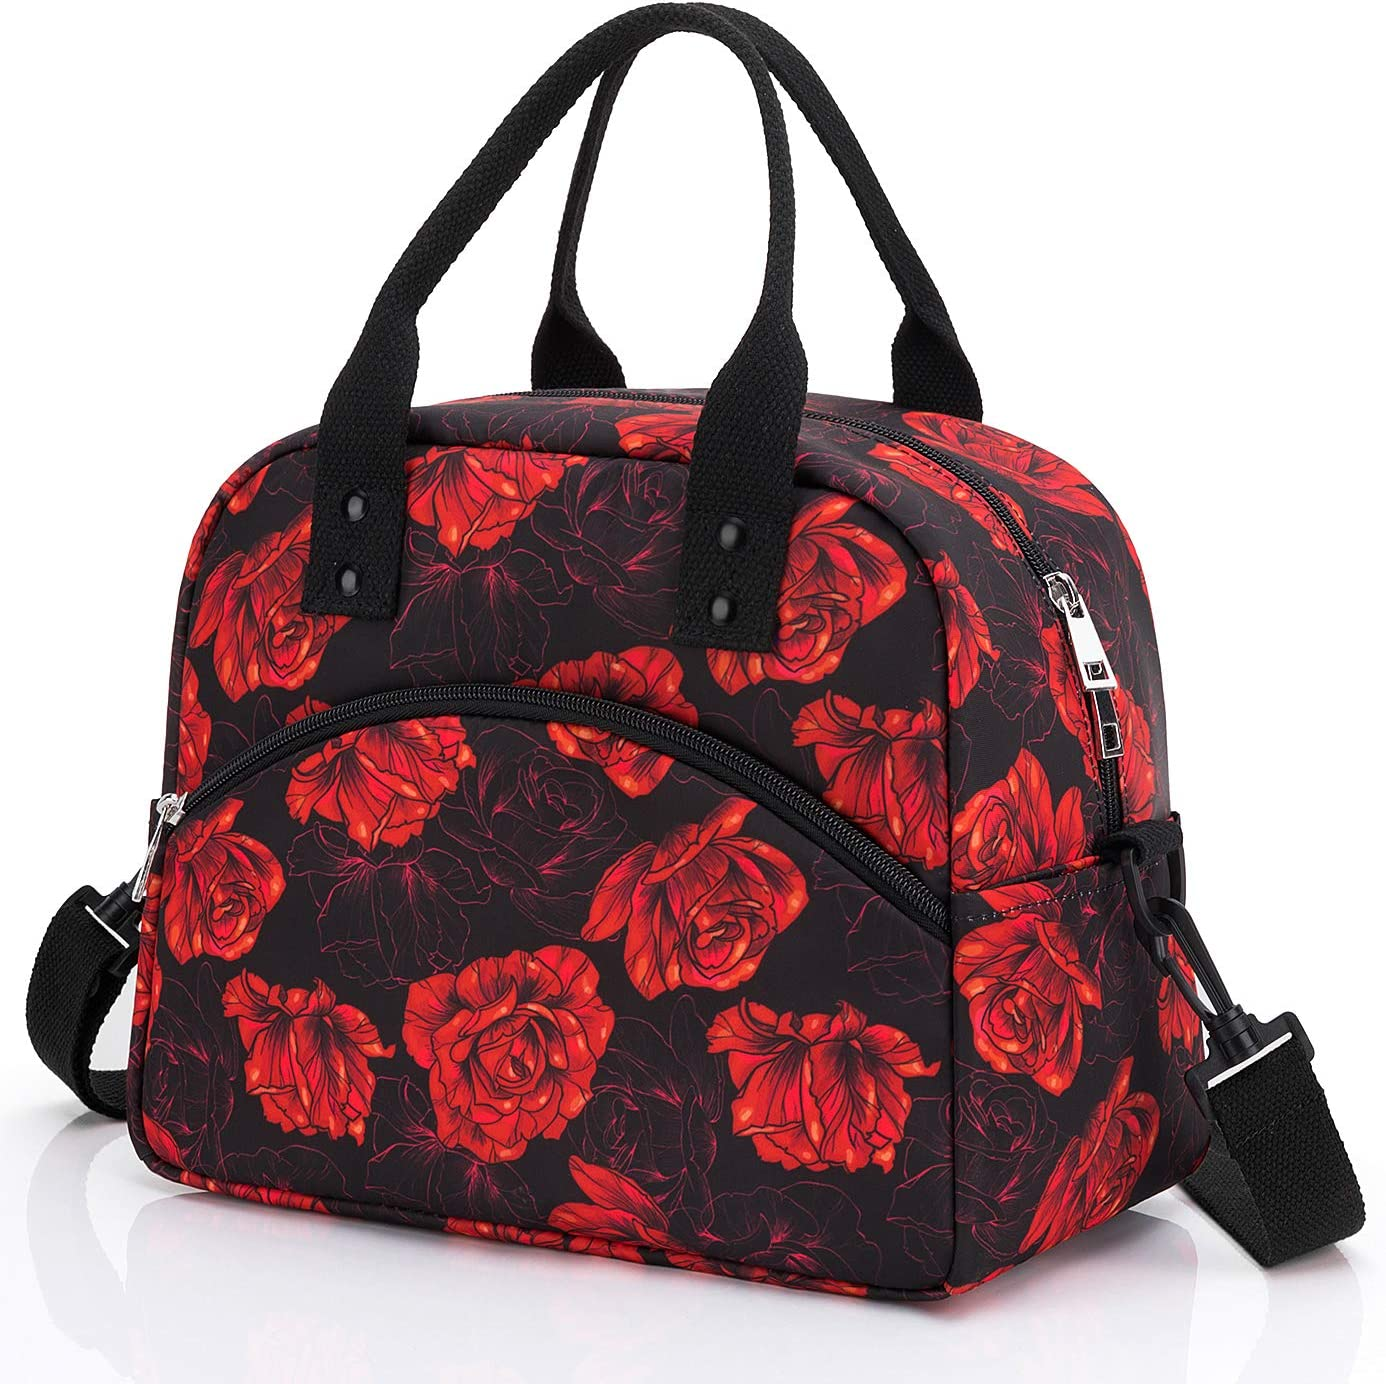 Insulated Lunch Bag with Detachable Shoulder Strap & Carry Handle,Leak Proof Reusable Lunch bag, Eco-friendly Cooler Bag Tote Bag,School Lunch Box for Kids,Men,Women(Red Rose)